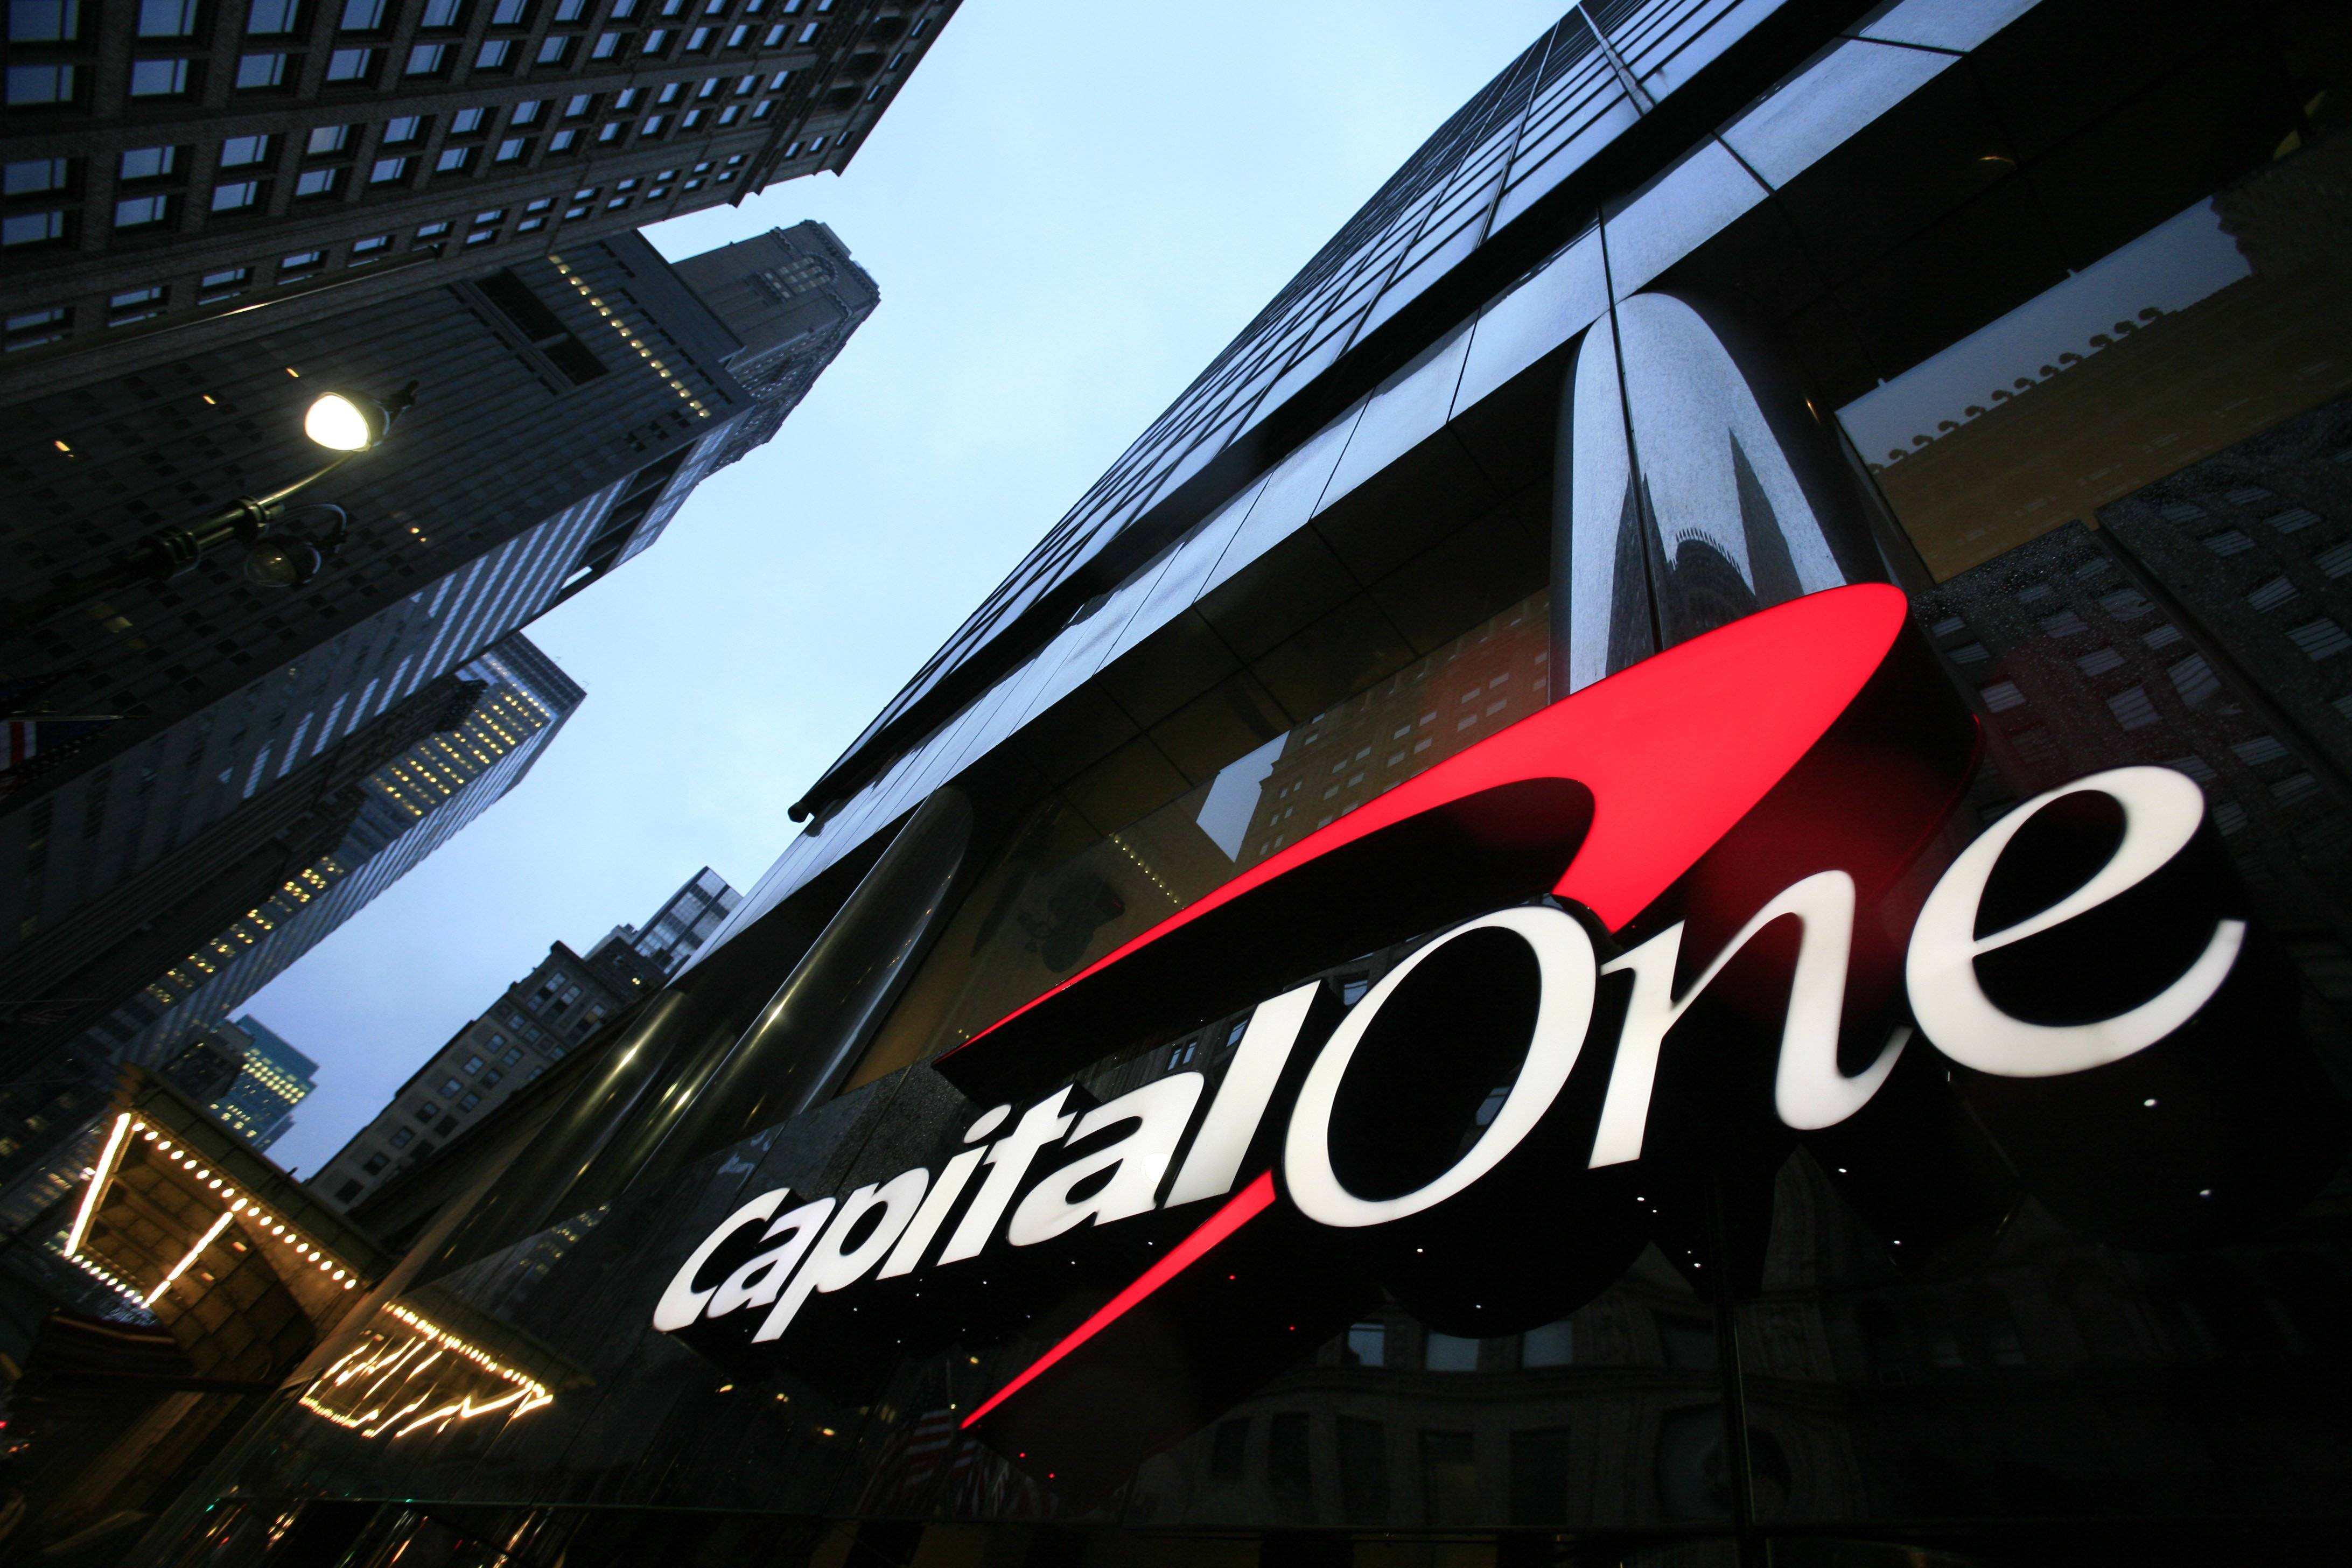 Capital One said Thursday that it had resolved an internal technology issues that left customers around the country with multiple charges for the same debit card transactions on their accounts.